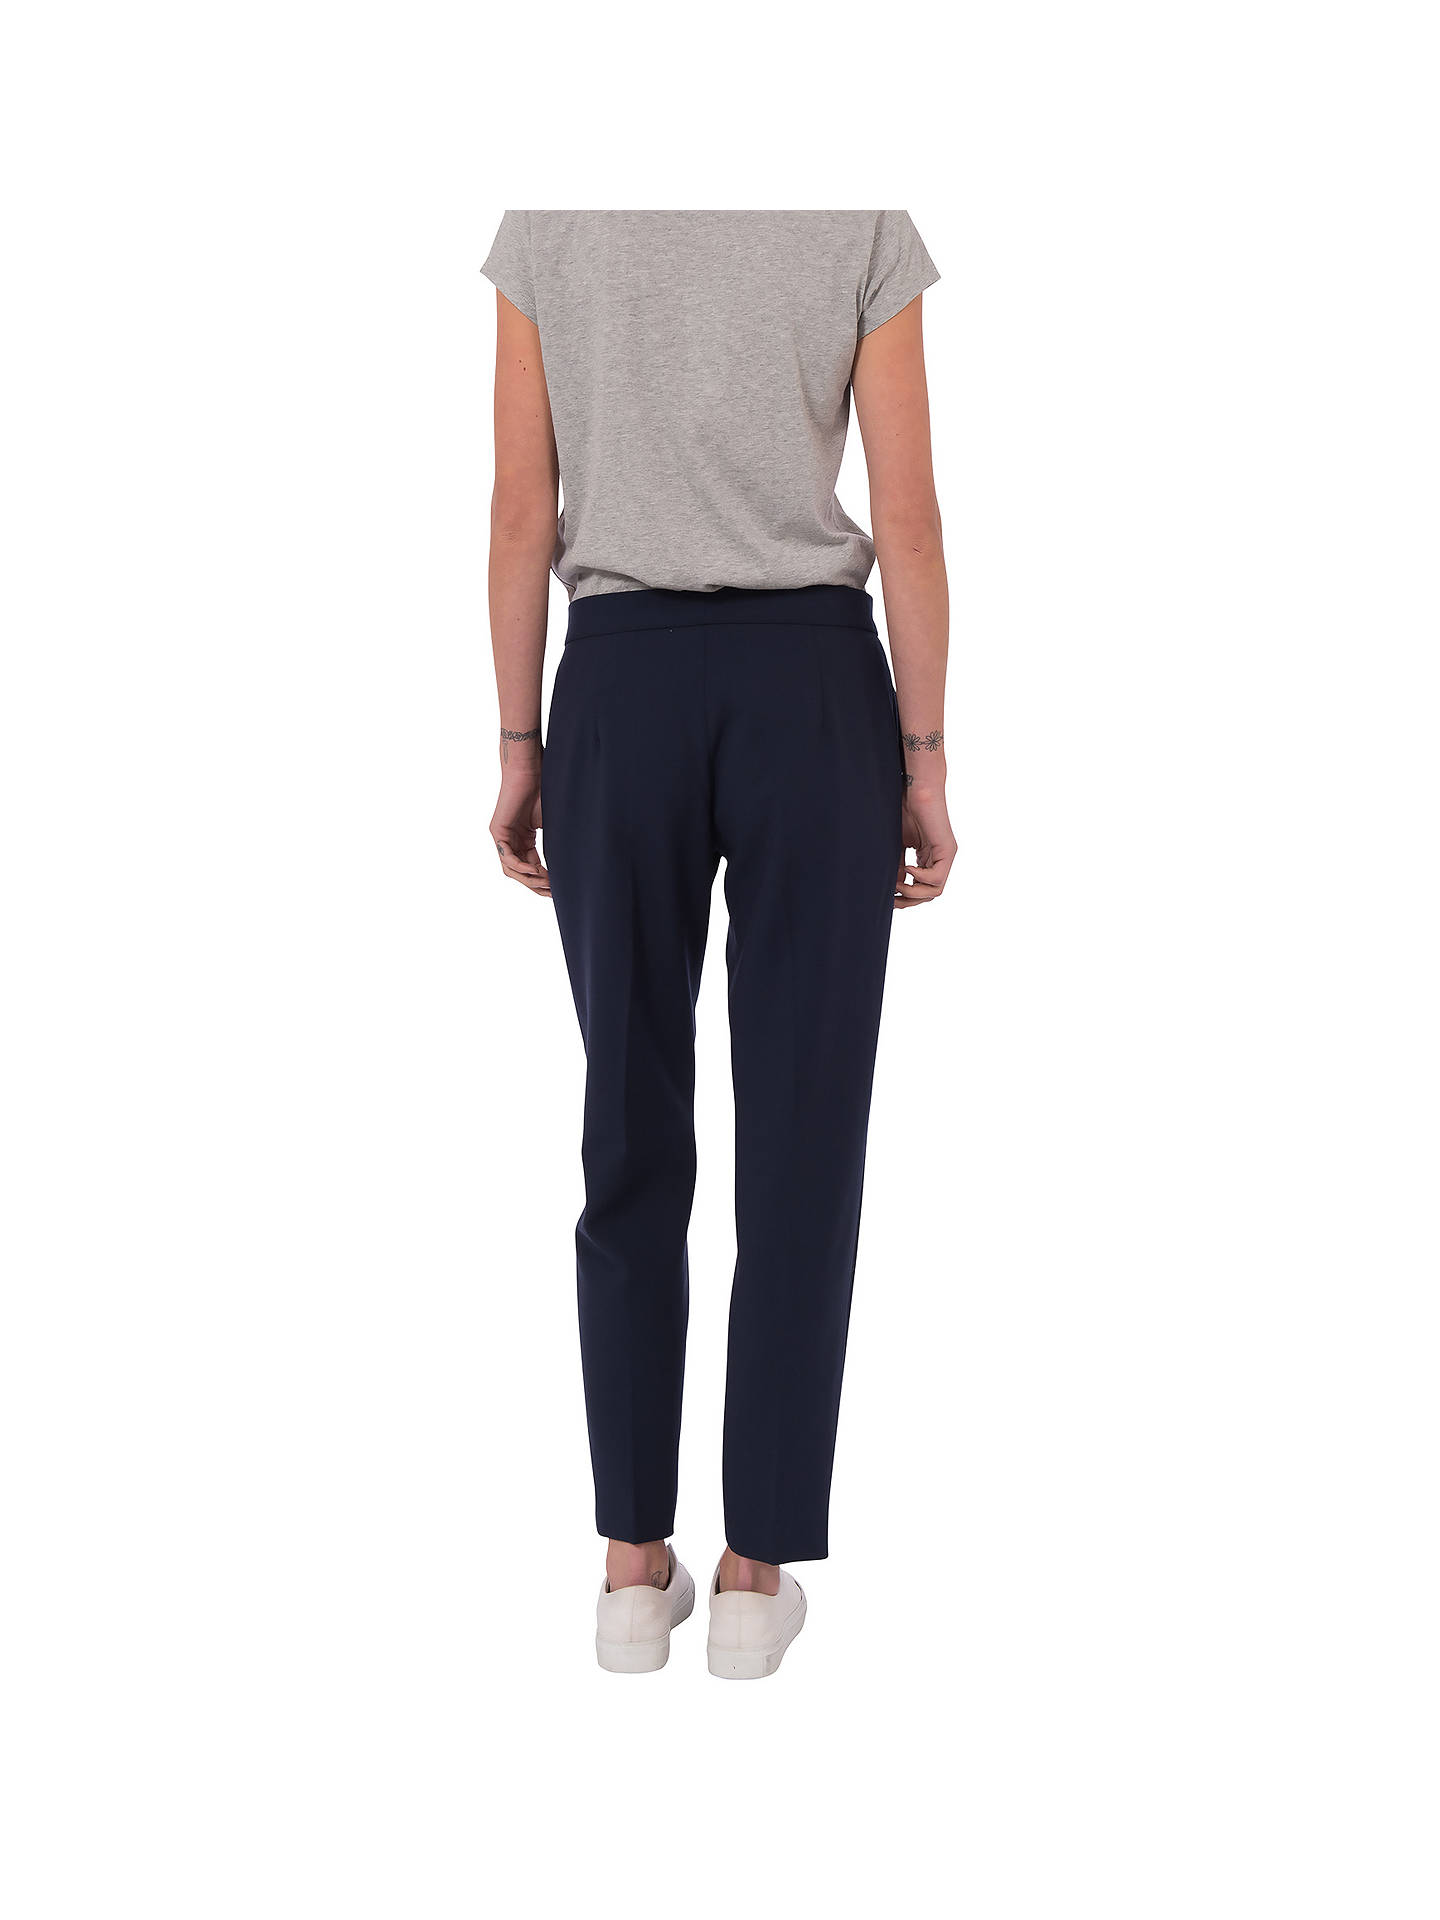 BuyFrench Connection Whisper Ruth Tapered Trousers, Nocturnal, 6 Online at johnlewis.com